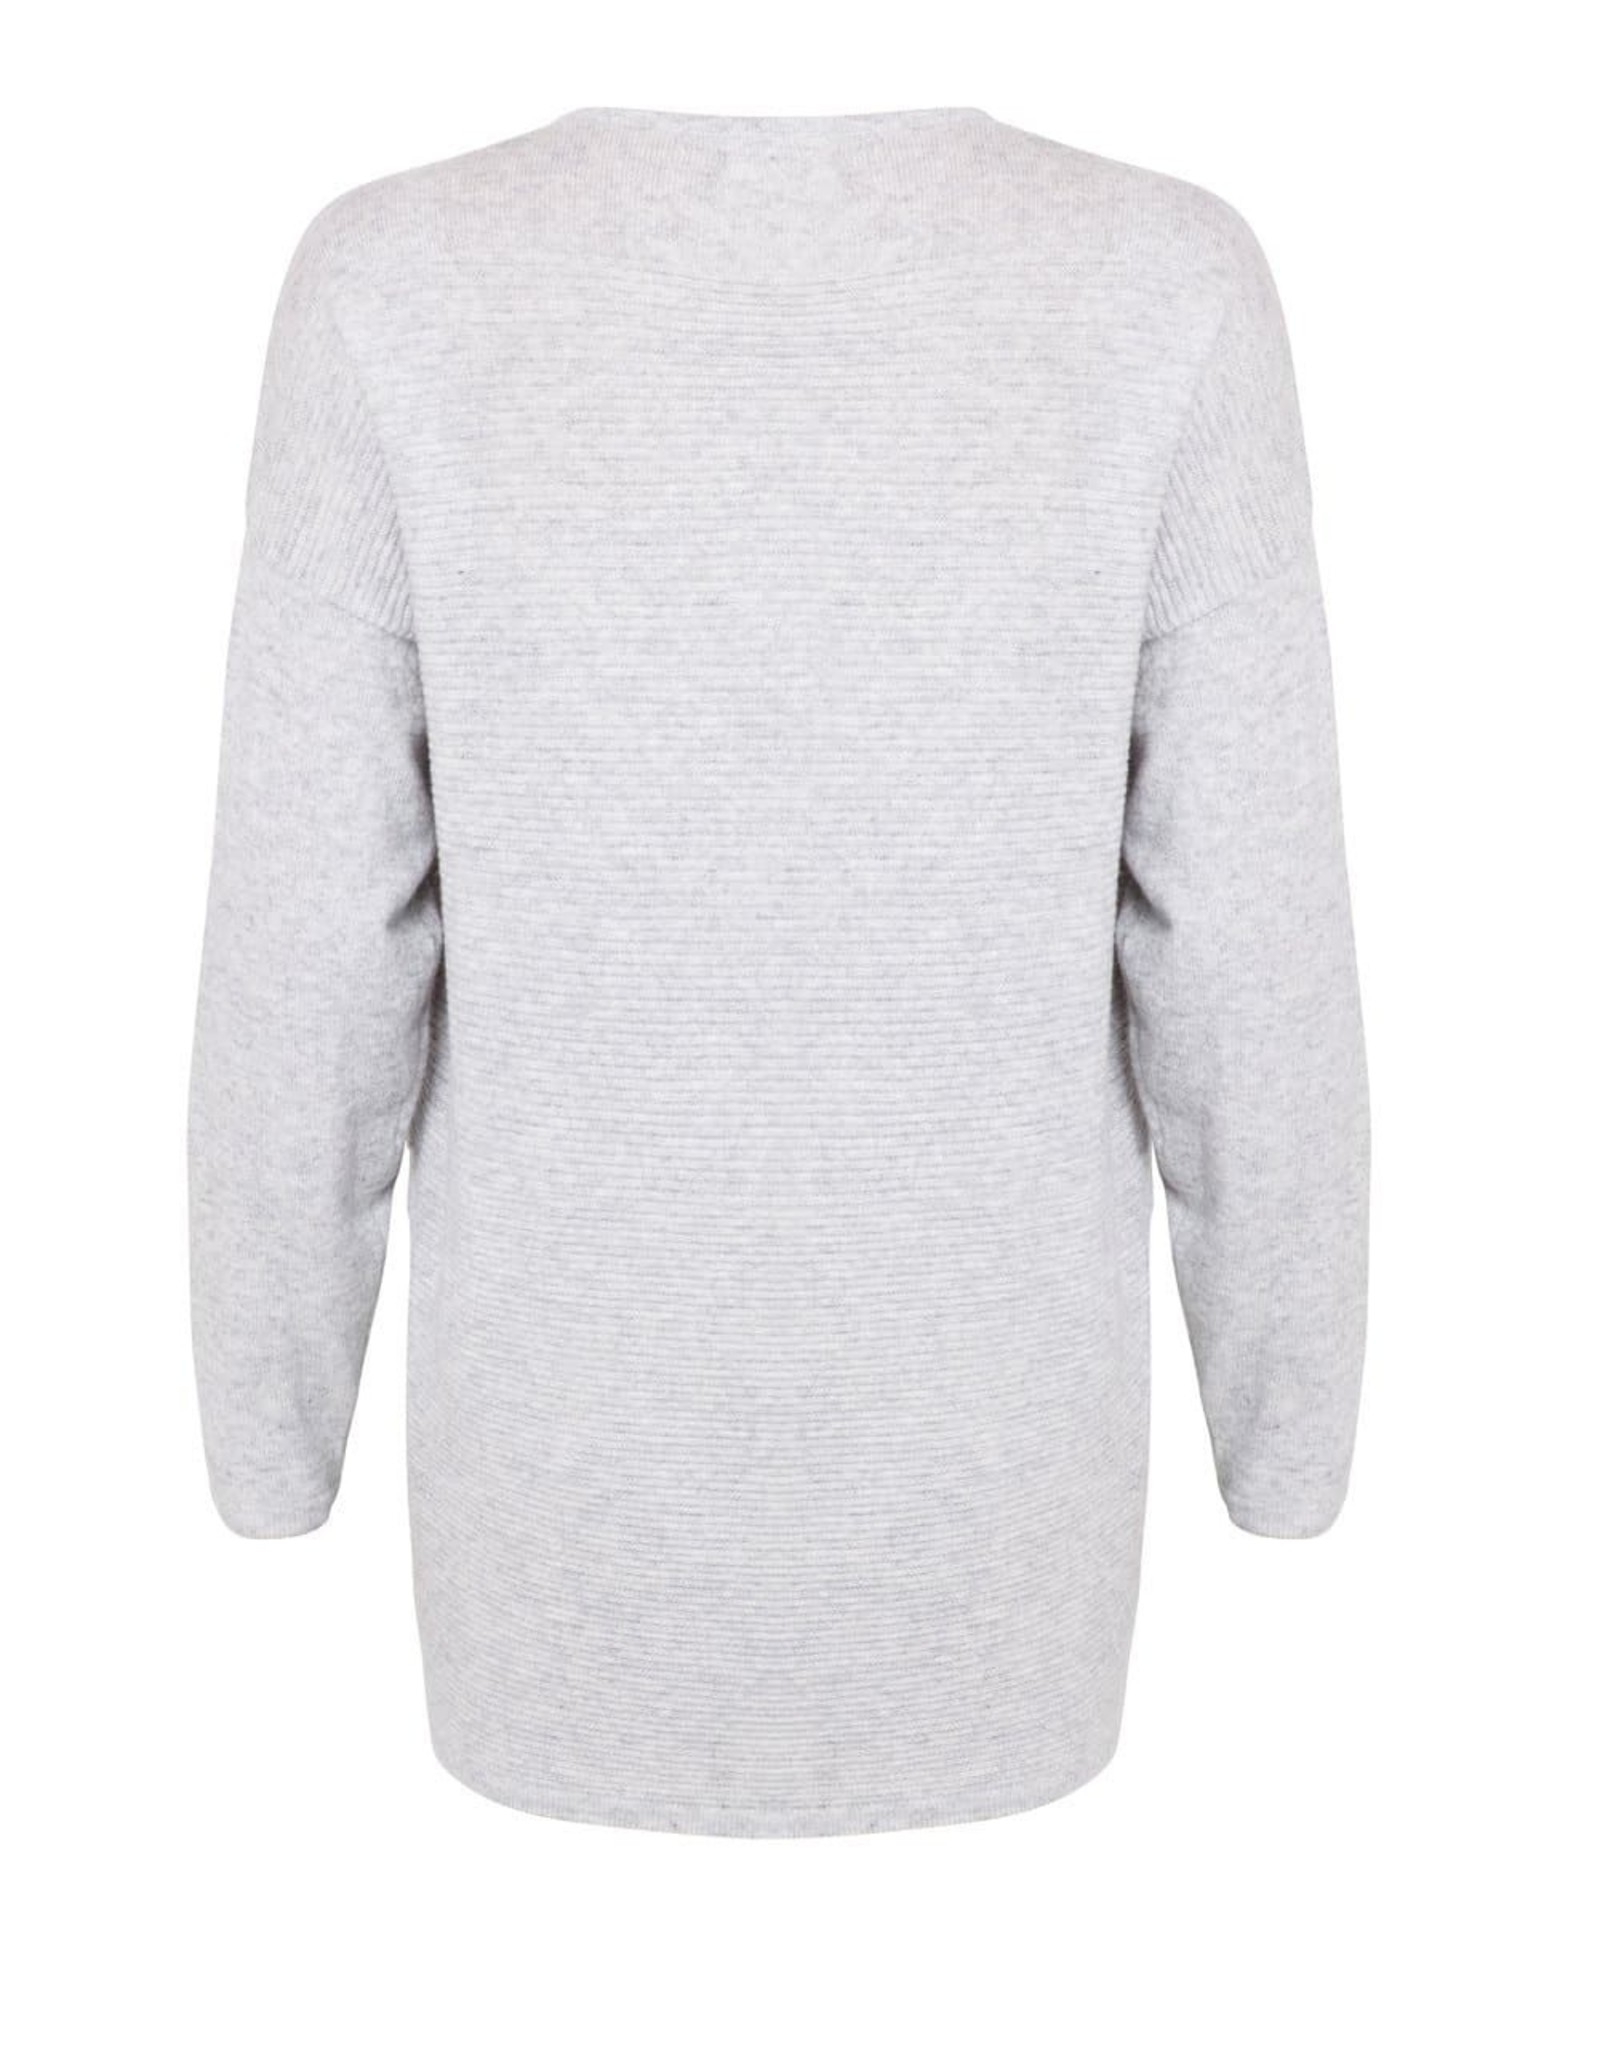 MIA FRATINO FAVOURITE SCOOP SWEATER FOGGY